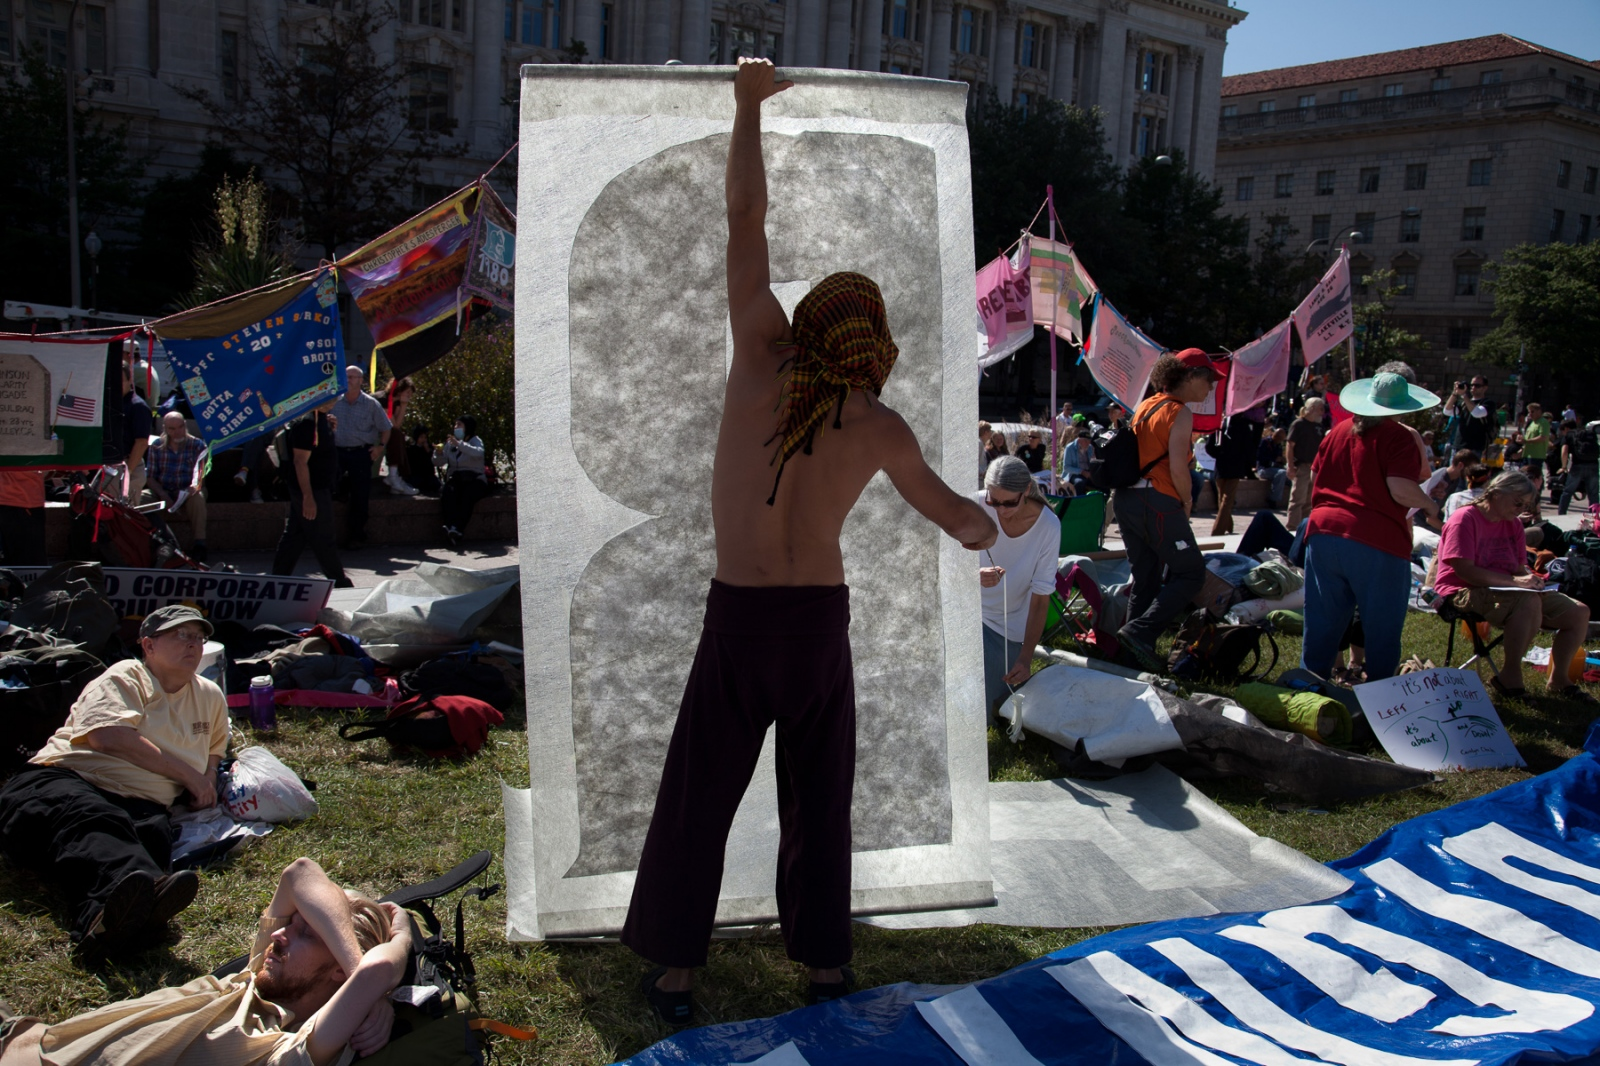 On the first day of Occupy DC protestors prepare to stay for the long haul.